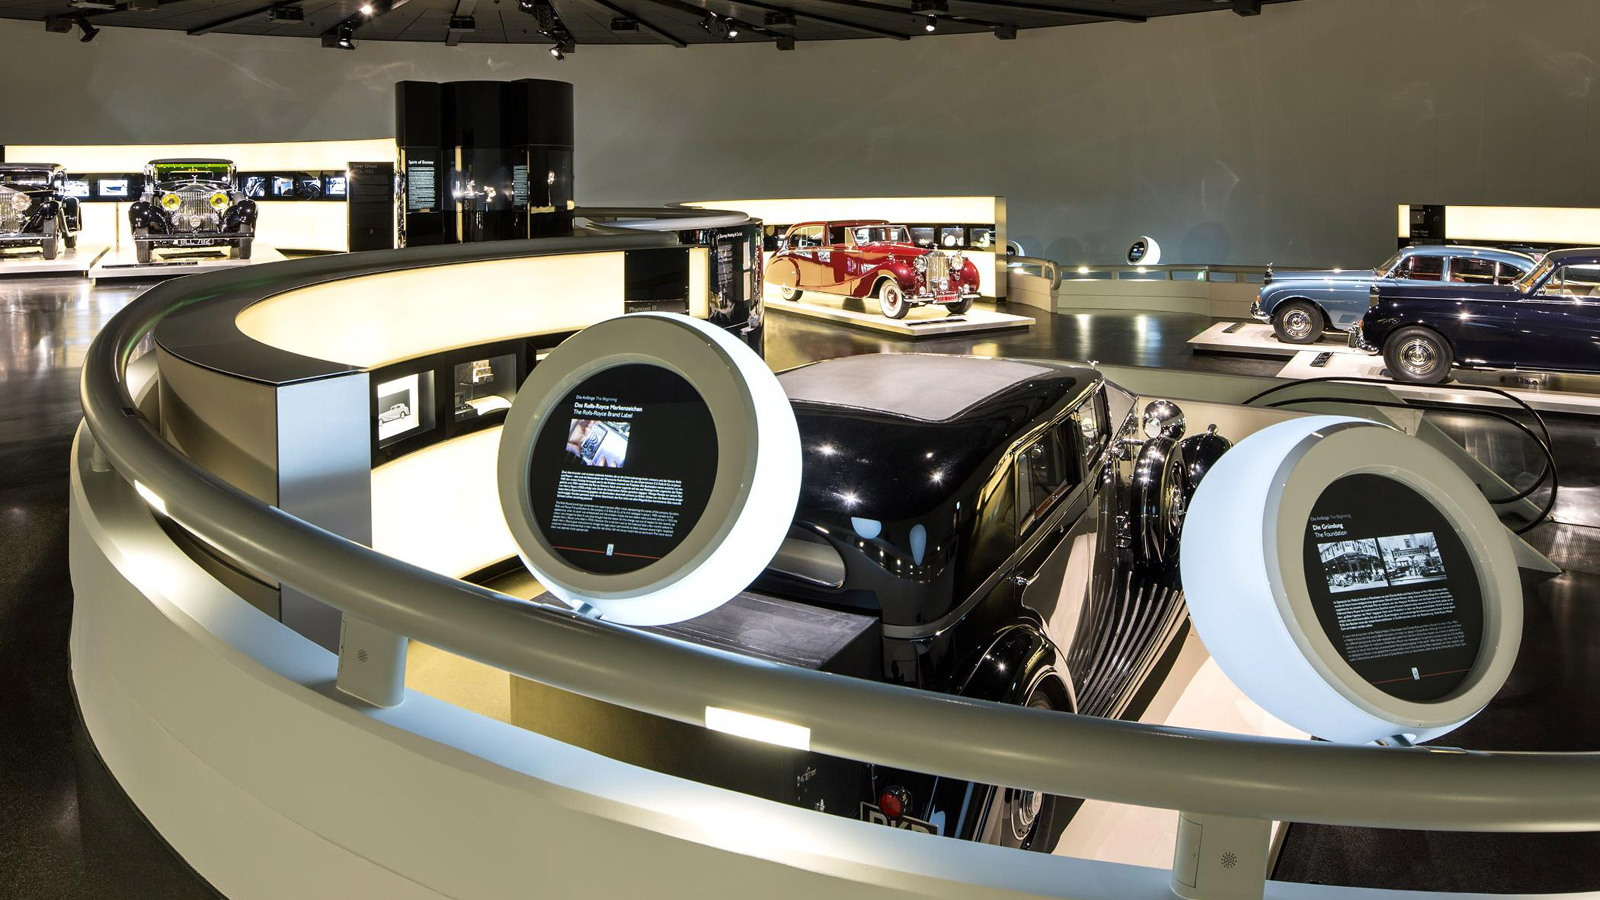 Rolls-Royce exhibition at the BMW Museum in Munich, Germany